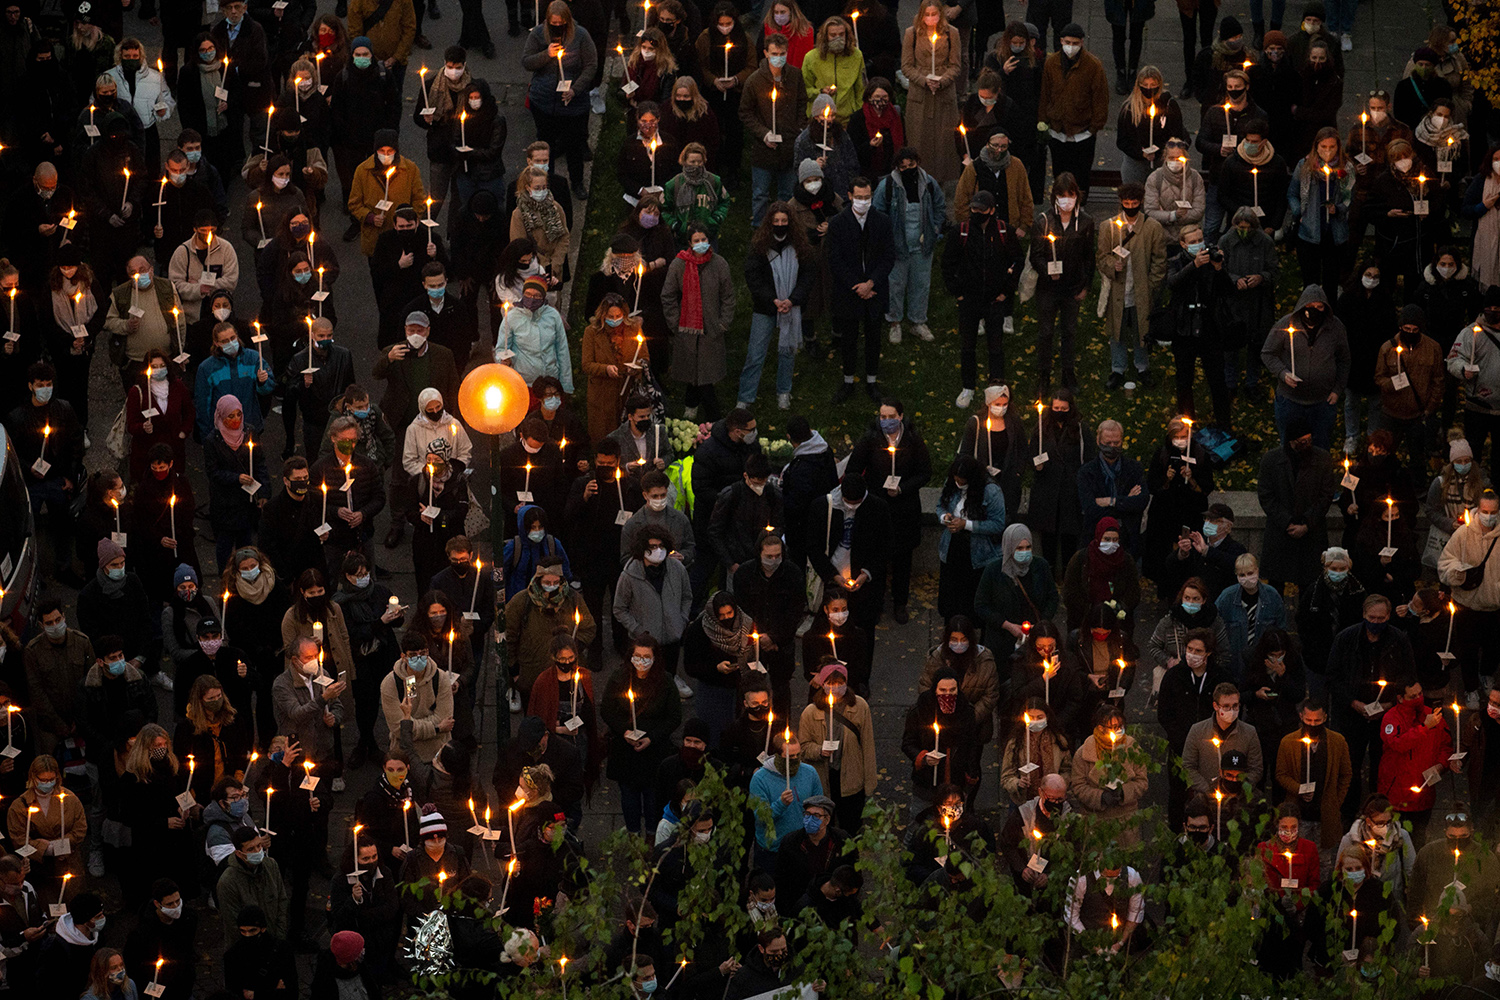 People attend a candlelight vigil for the victims of a terrorist attack in Vienna, Austria, on Nov. 5. Four people were shot dead by a man who attacked a popular nightlife area in the heart of Vienna on Nov. 2, the last night before a second coronavirus shutdown. JOE KLAMAR/AFP via Getty Images